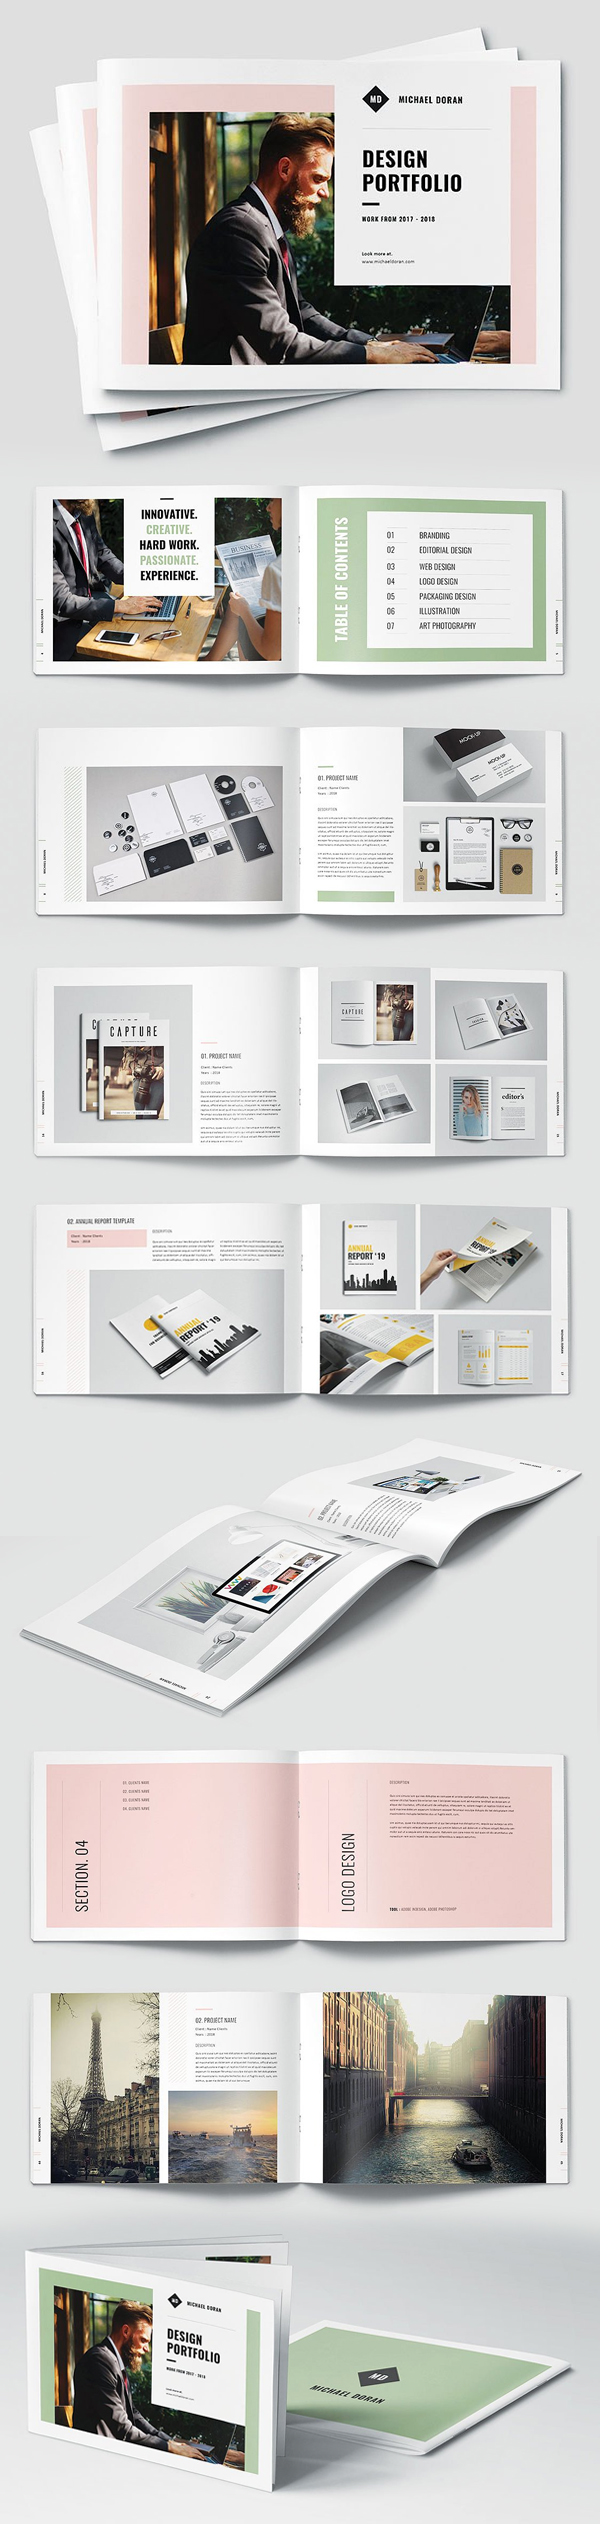 100 Professional Corporate Brochure Templates - 38